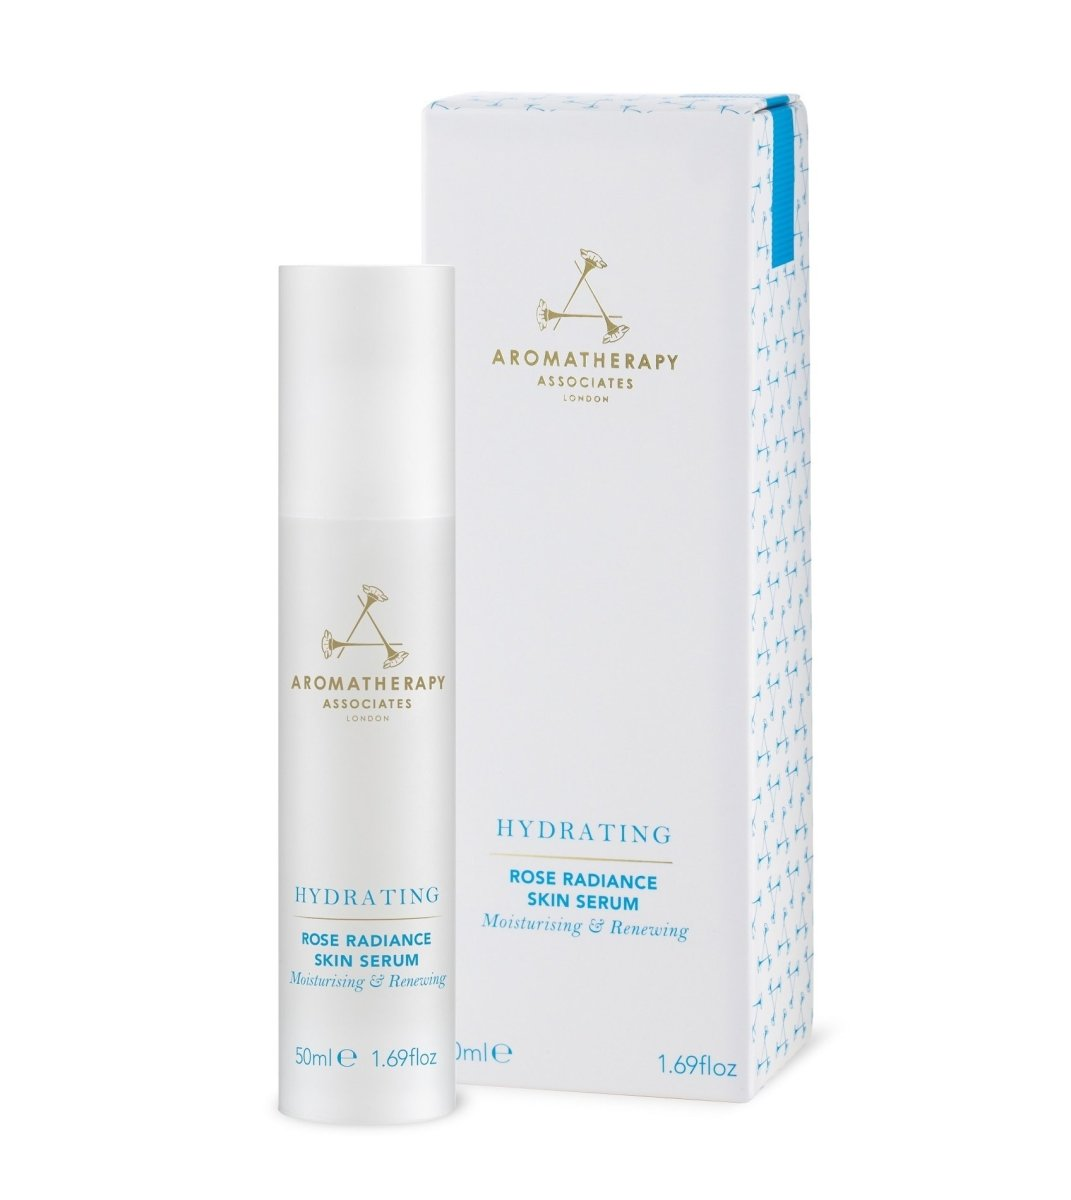 AROMATHERAPY ASSOCIATES Hydrating Rose Radiance Skin Serum [50ml] - MINT Organics